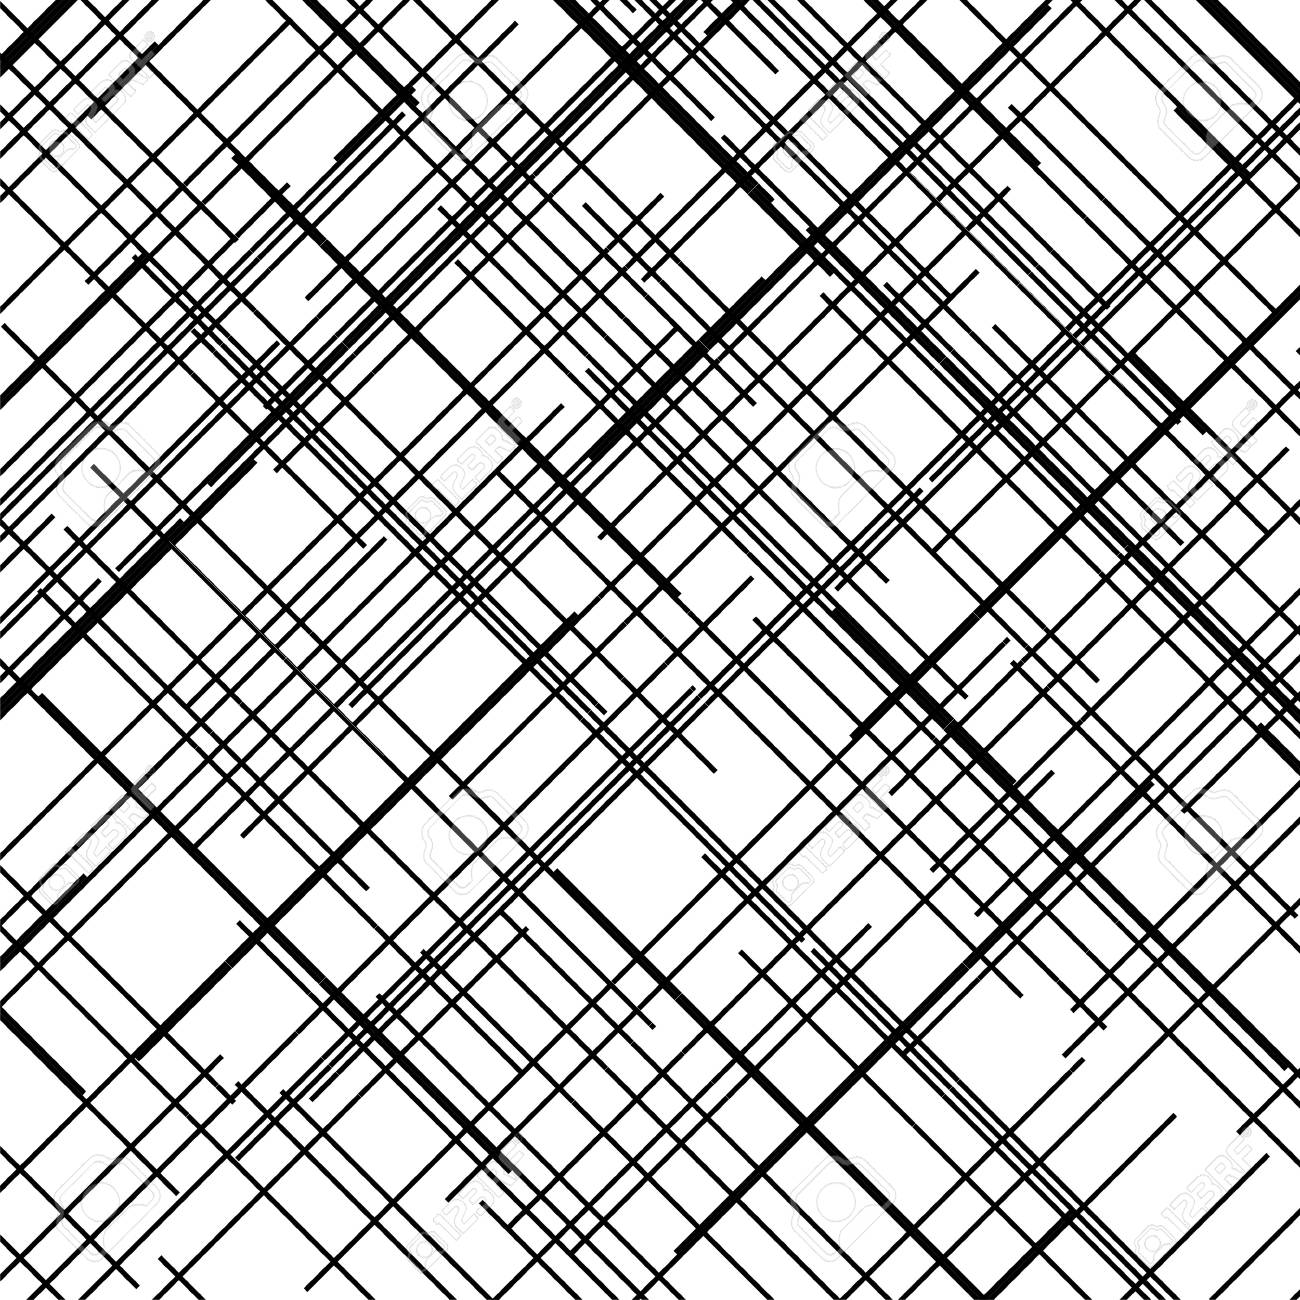 Criss cross pattern. Texture with intersecting straight lines. Design element to create abstract grunge, textured backgrounds, layouts. Digital hatching. Vector illustration - 100673212